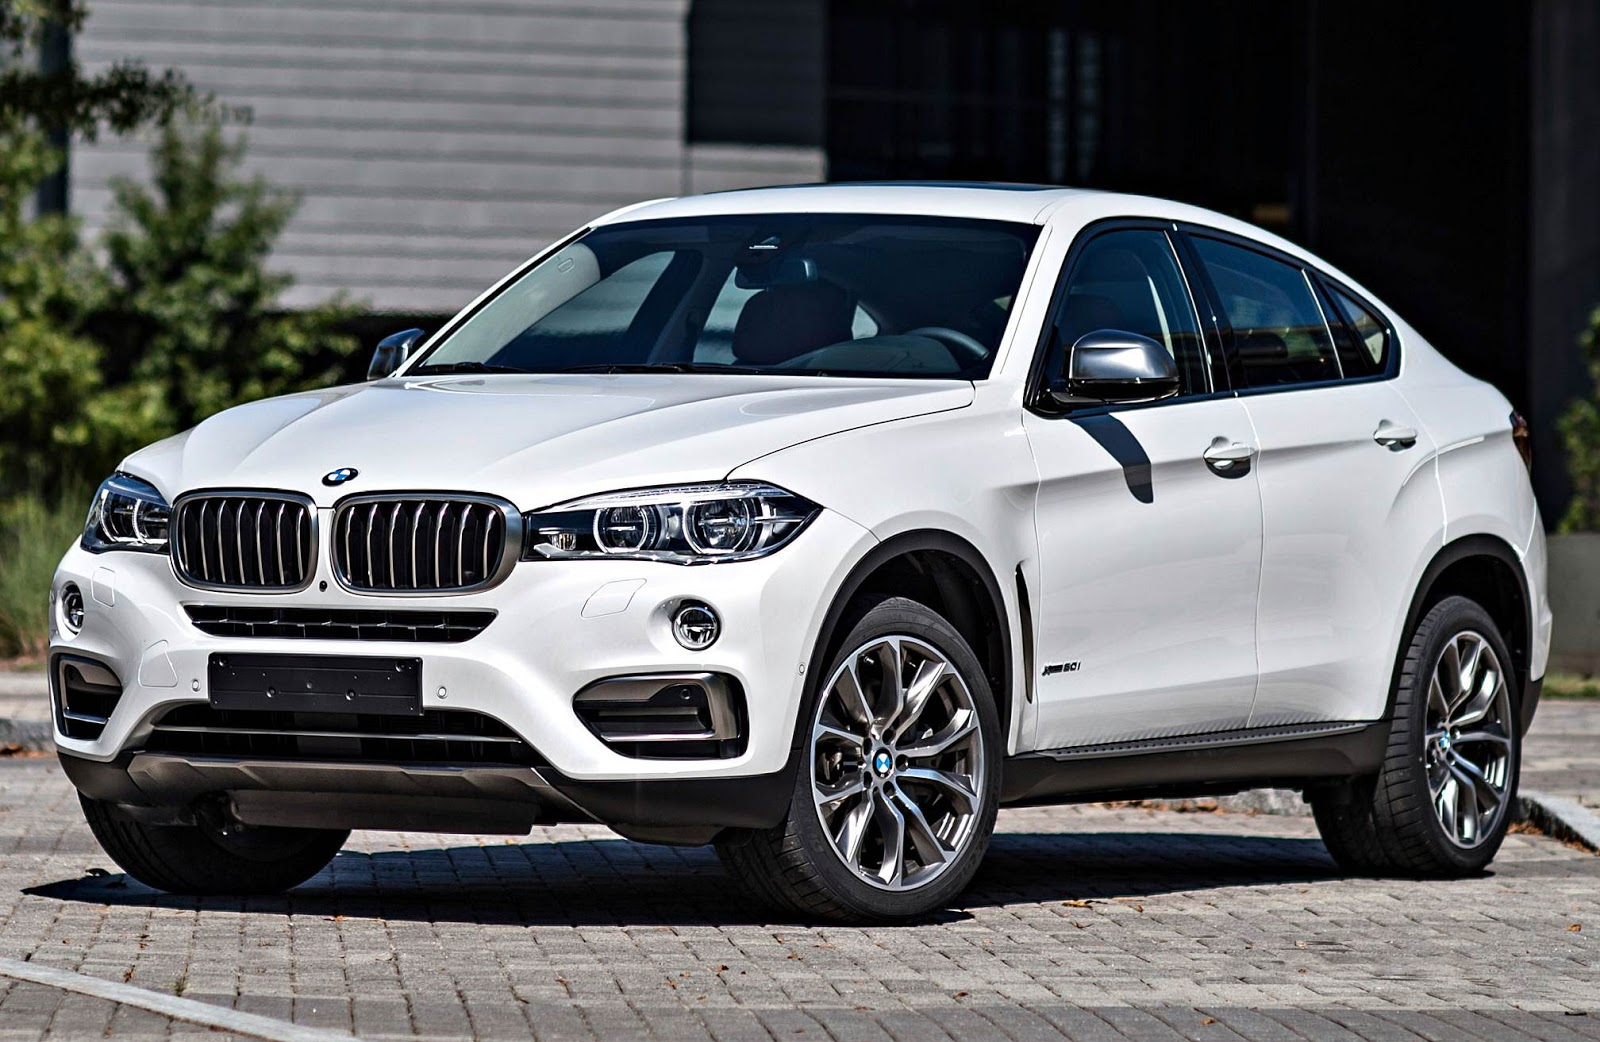 bmw x6 pricing - Music Search Engine at Search.com